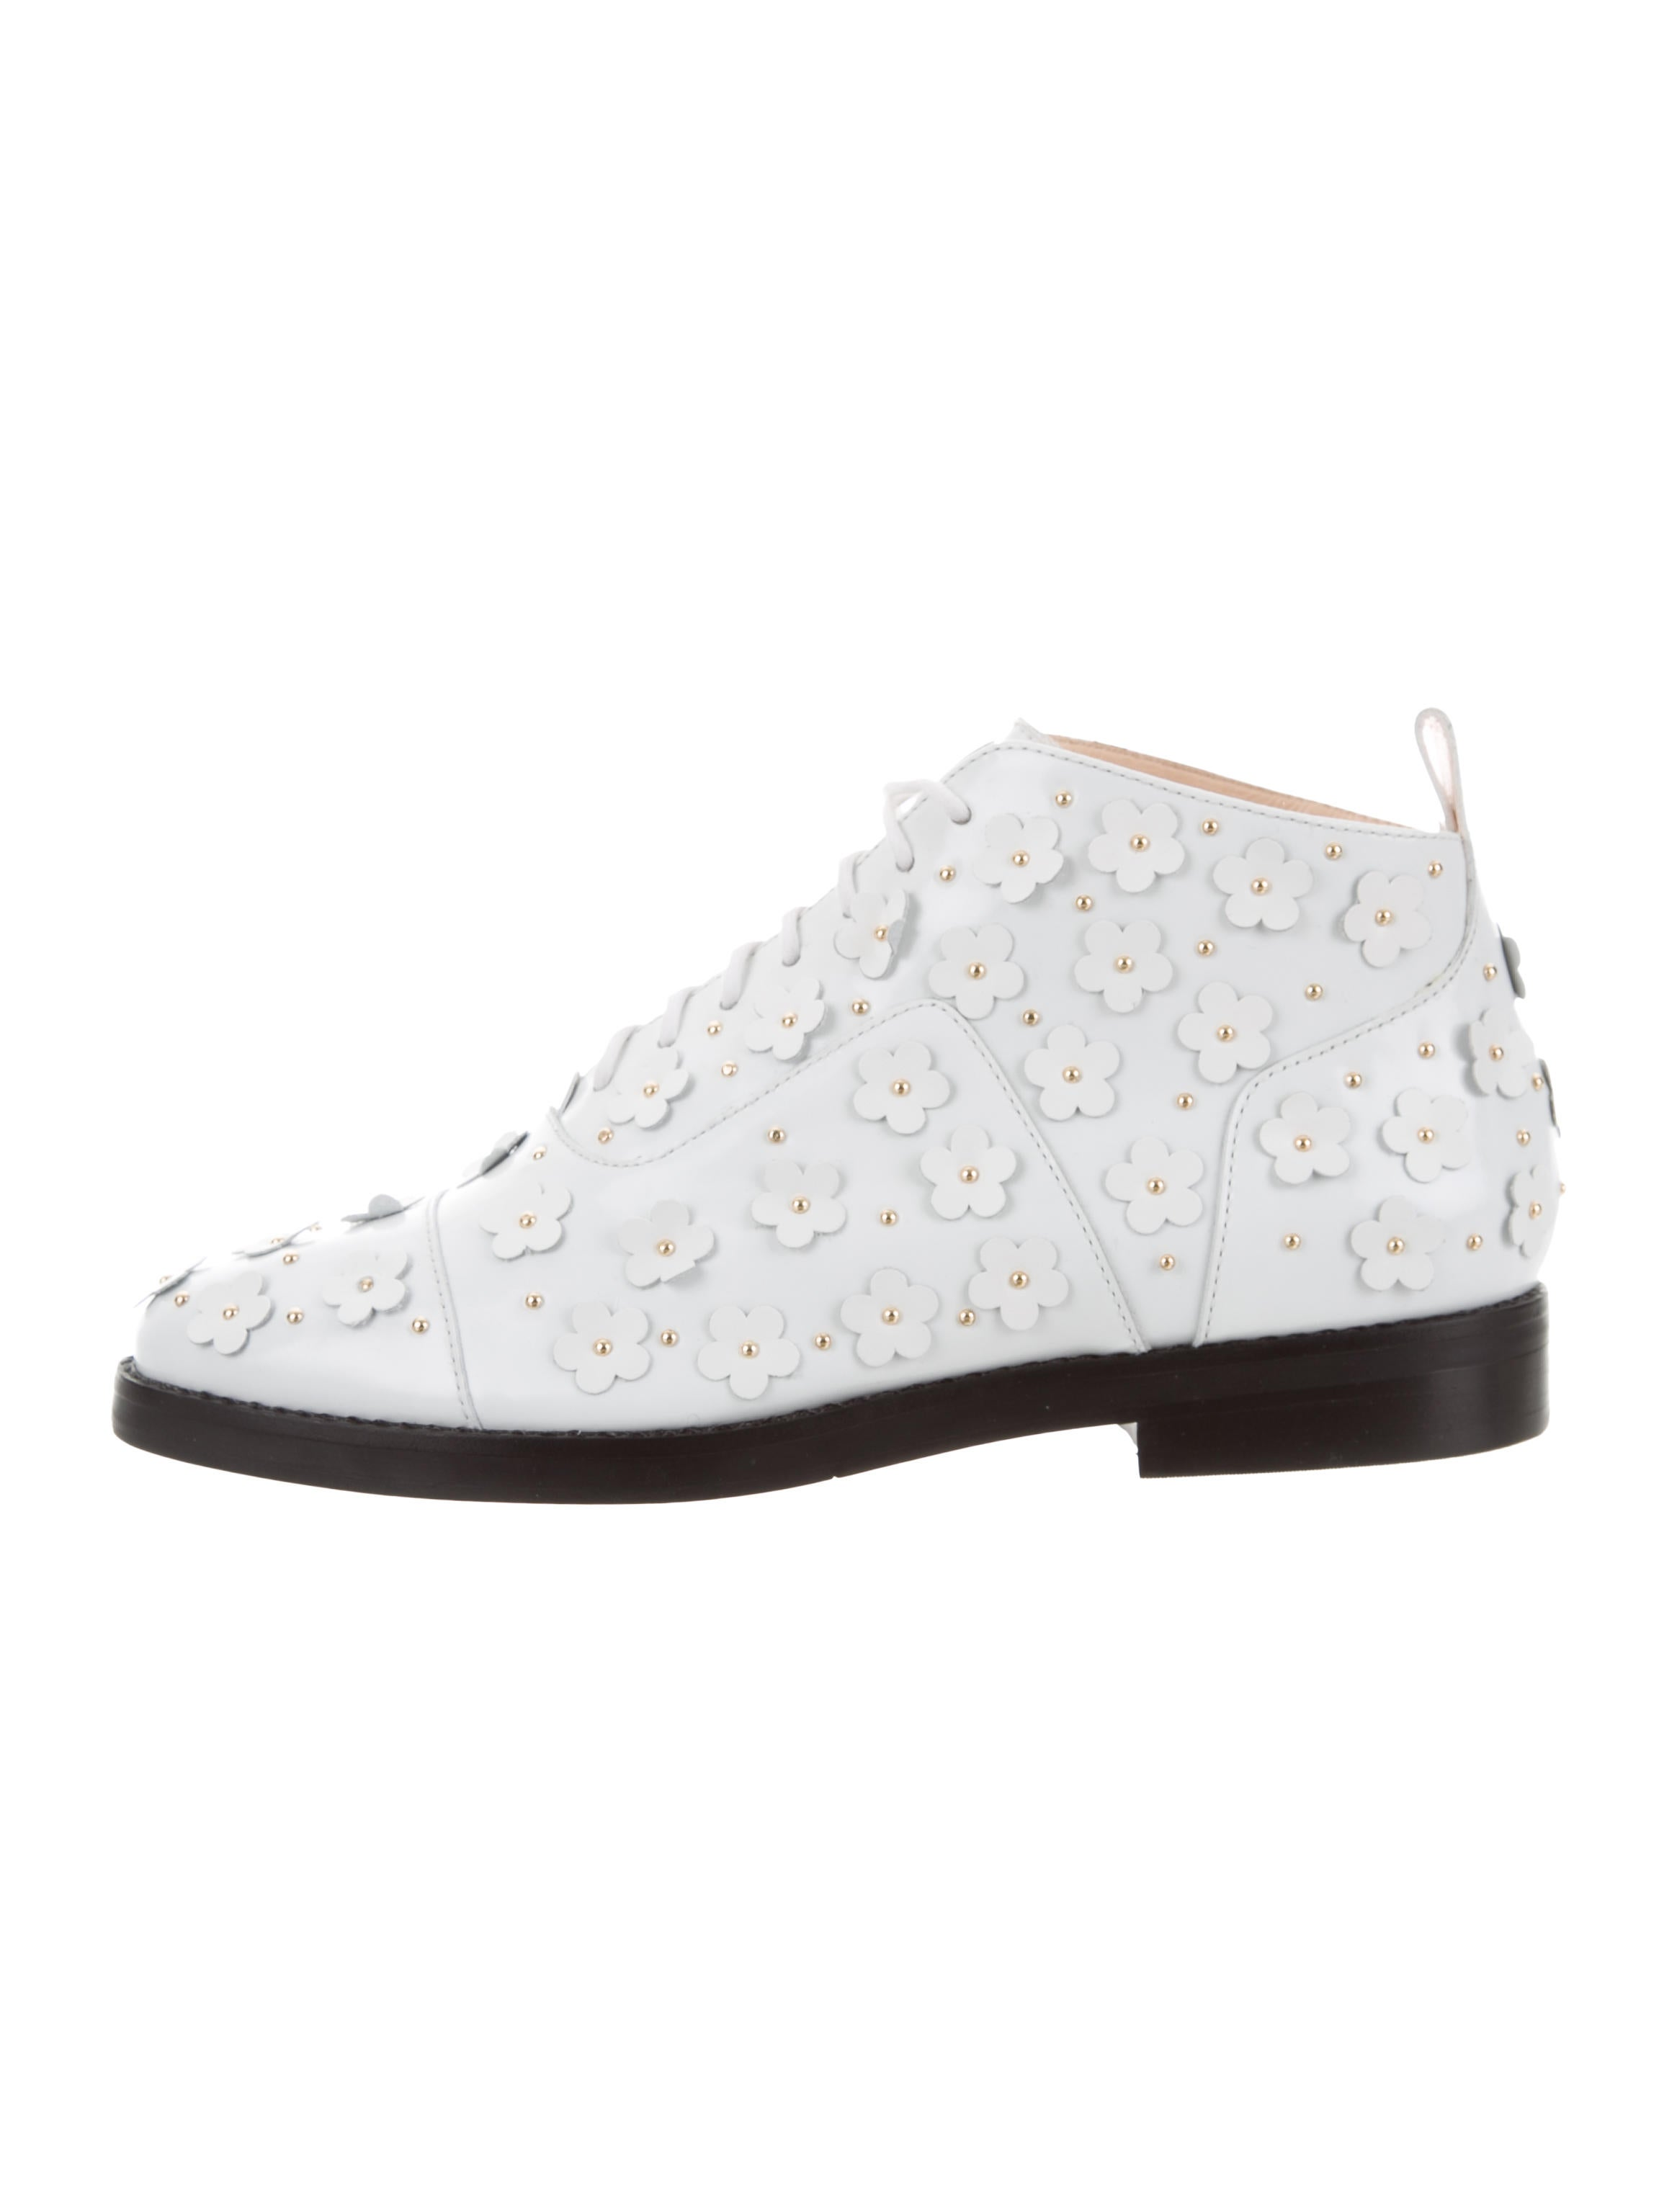 Isa Tapia Winston Floral Ankle Boots w/ Tags quality outlet store sale how much brand new unisex cheap price 2014 unisex cheap online ebay online mSTltI5m